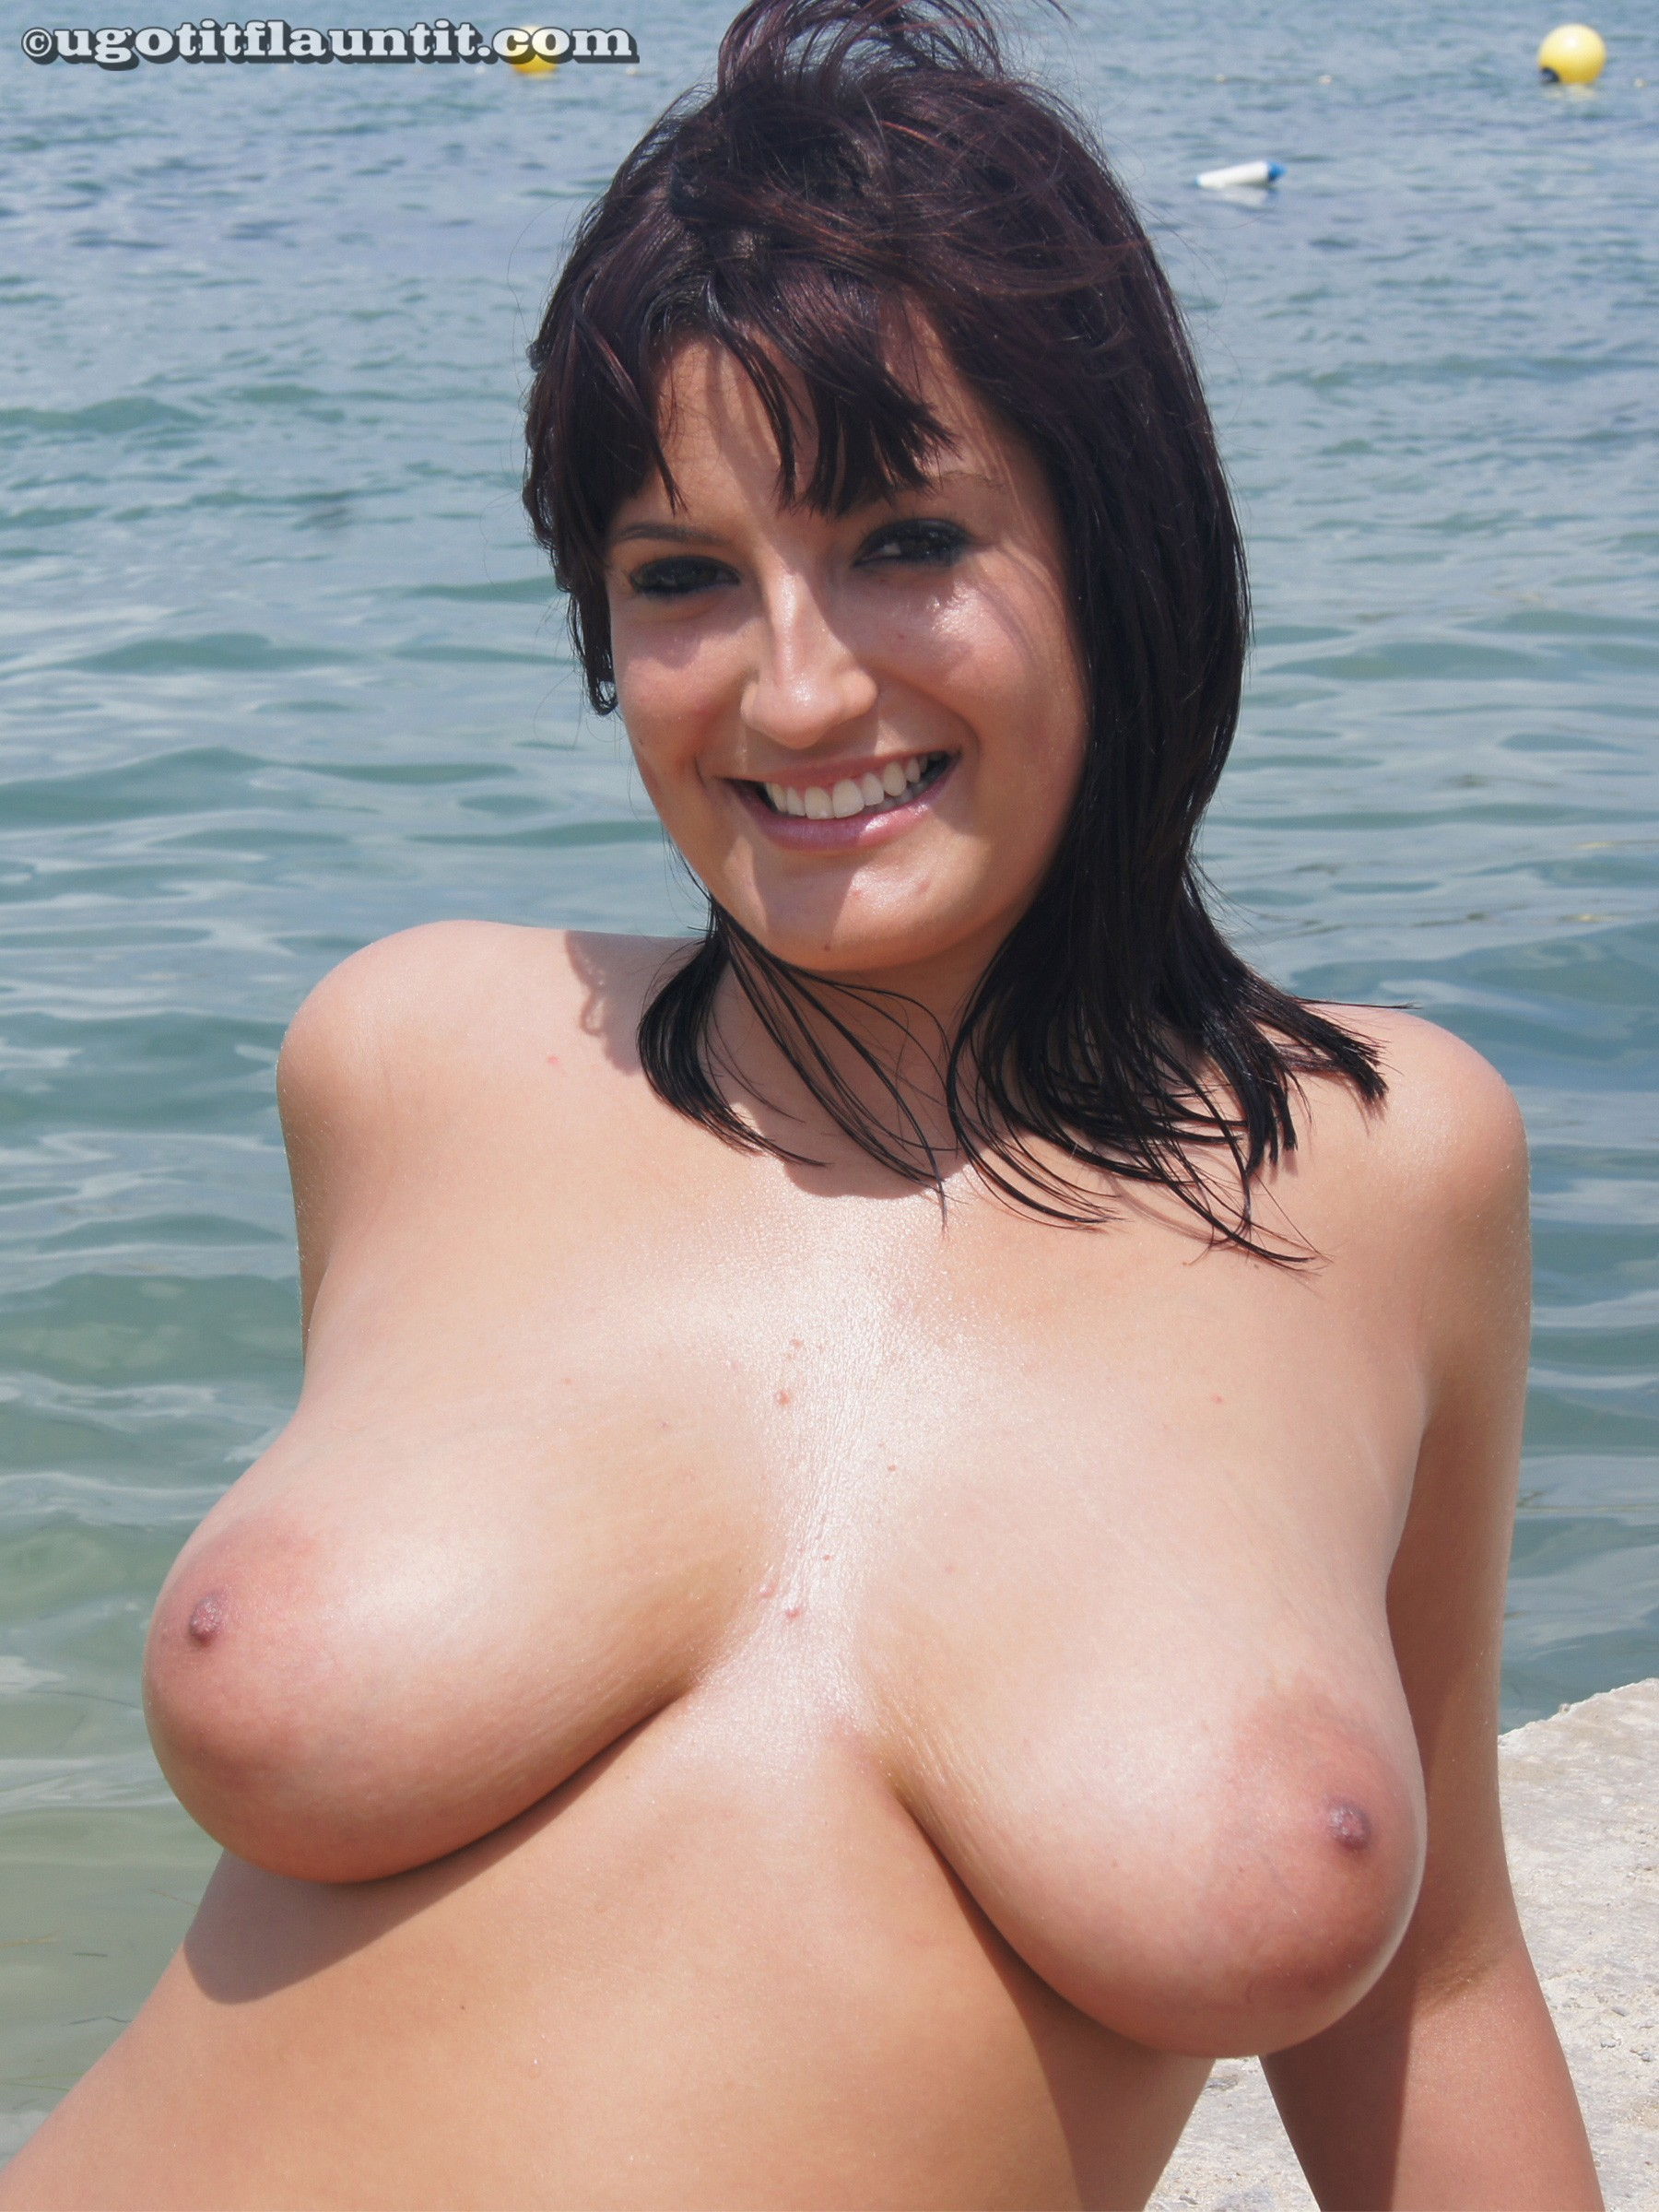 naked web cams with free credit when